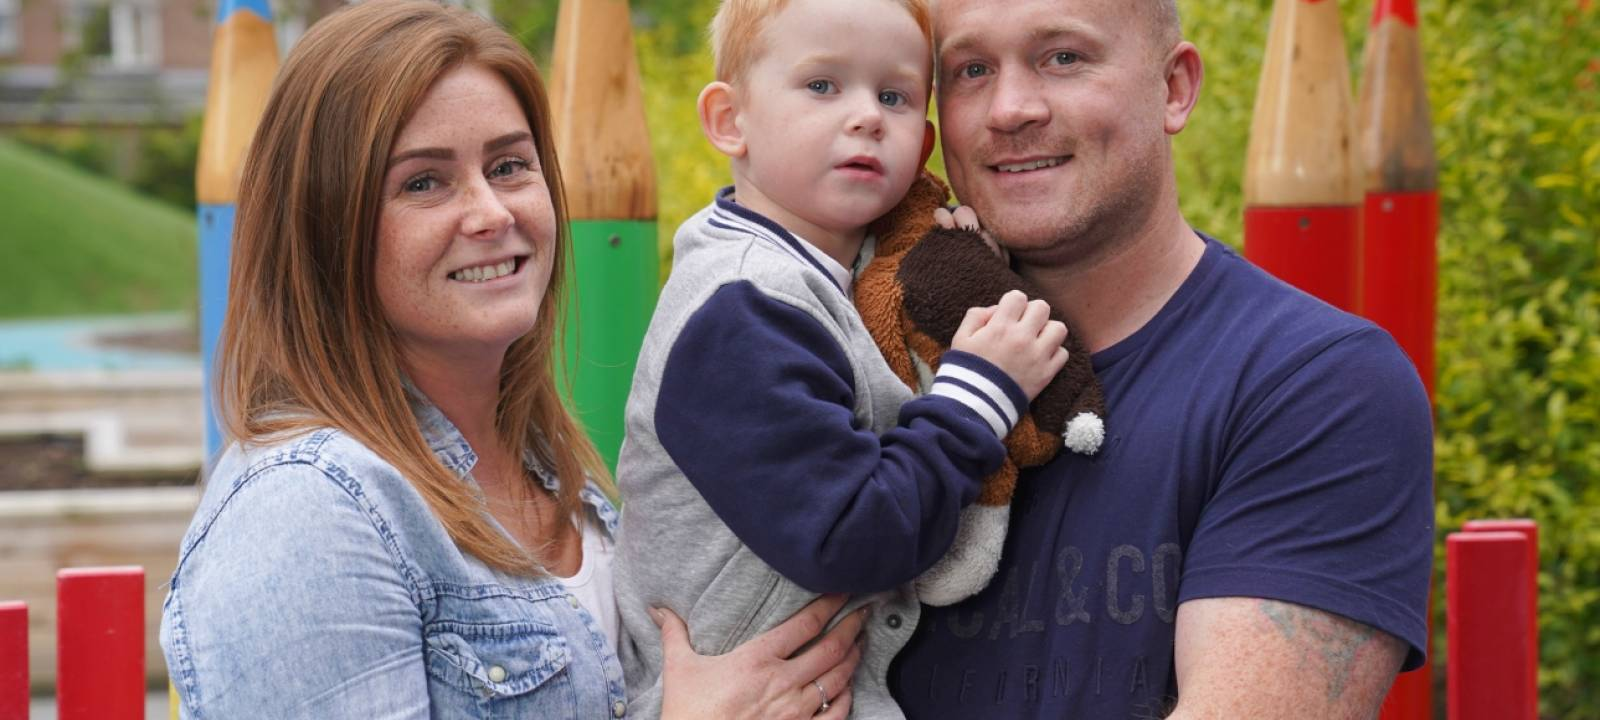 Billy, Julie and Aaron at Mencap Children's Centre